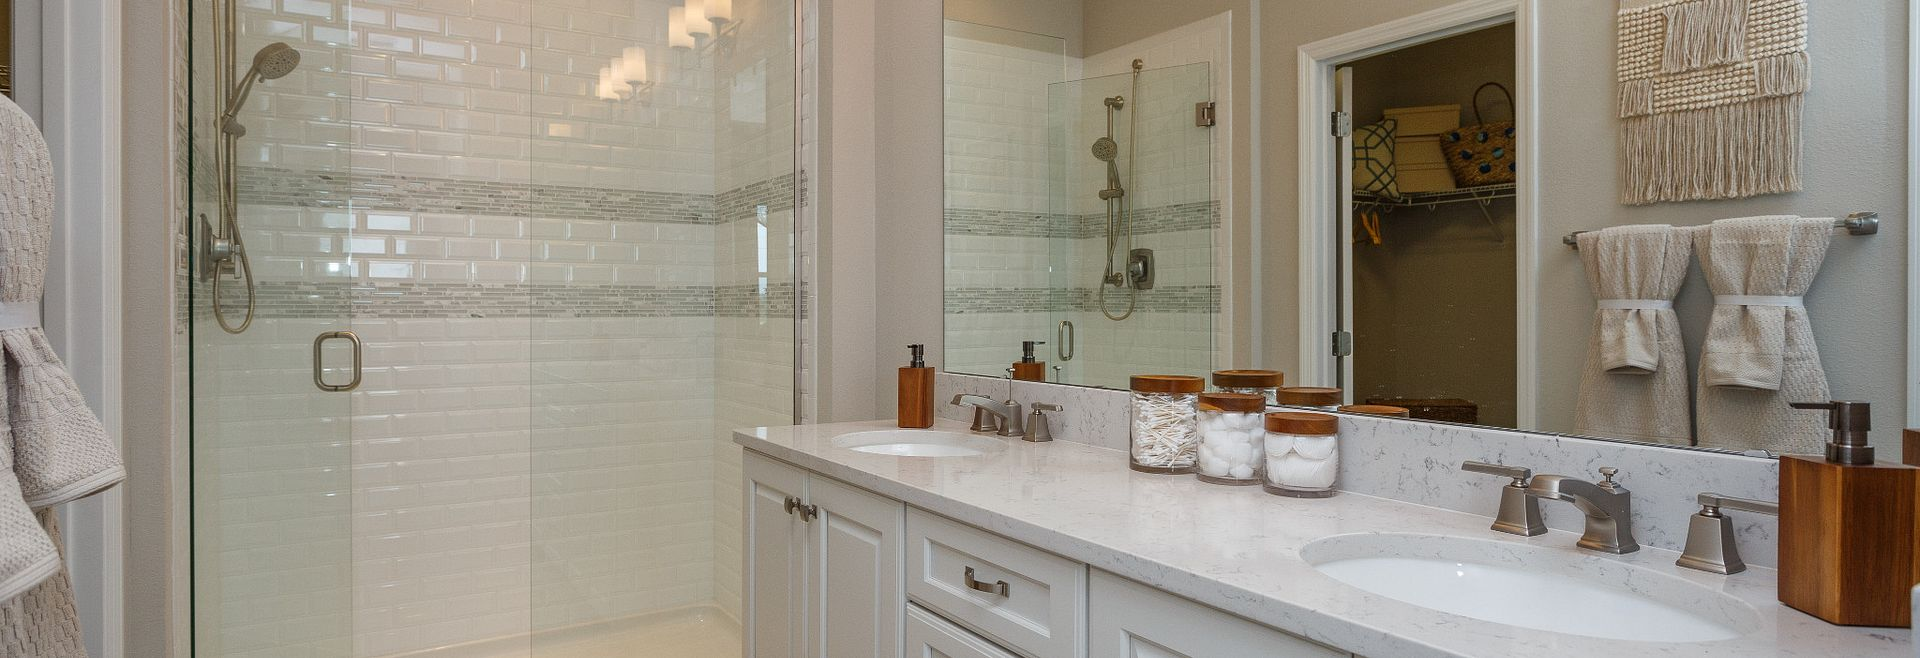 Trilogy Orlando Liberty Model Home Master Bath